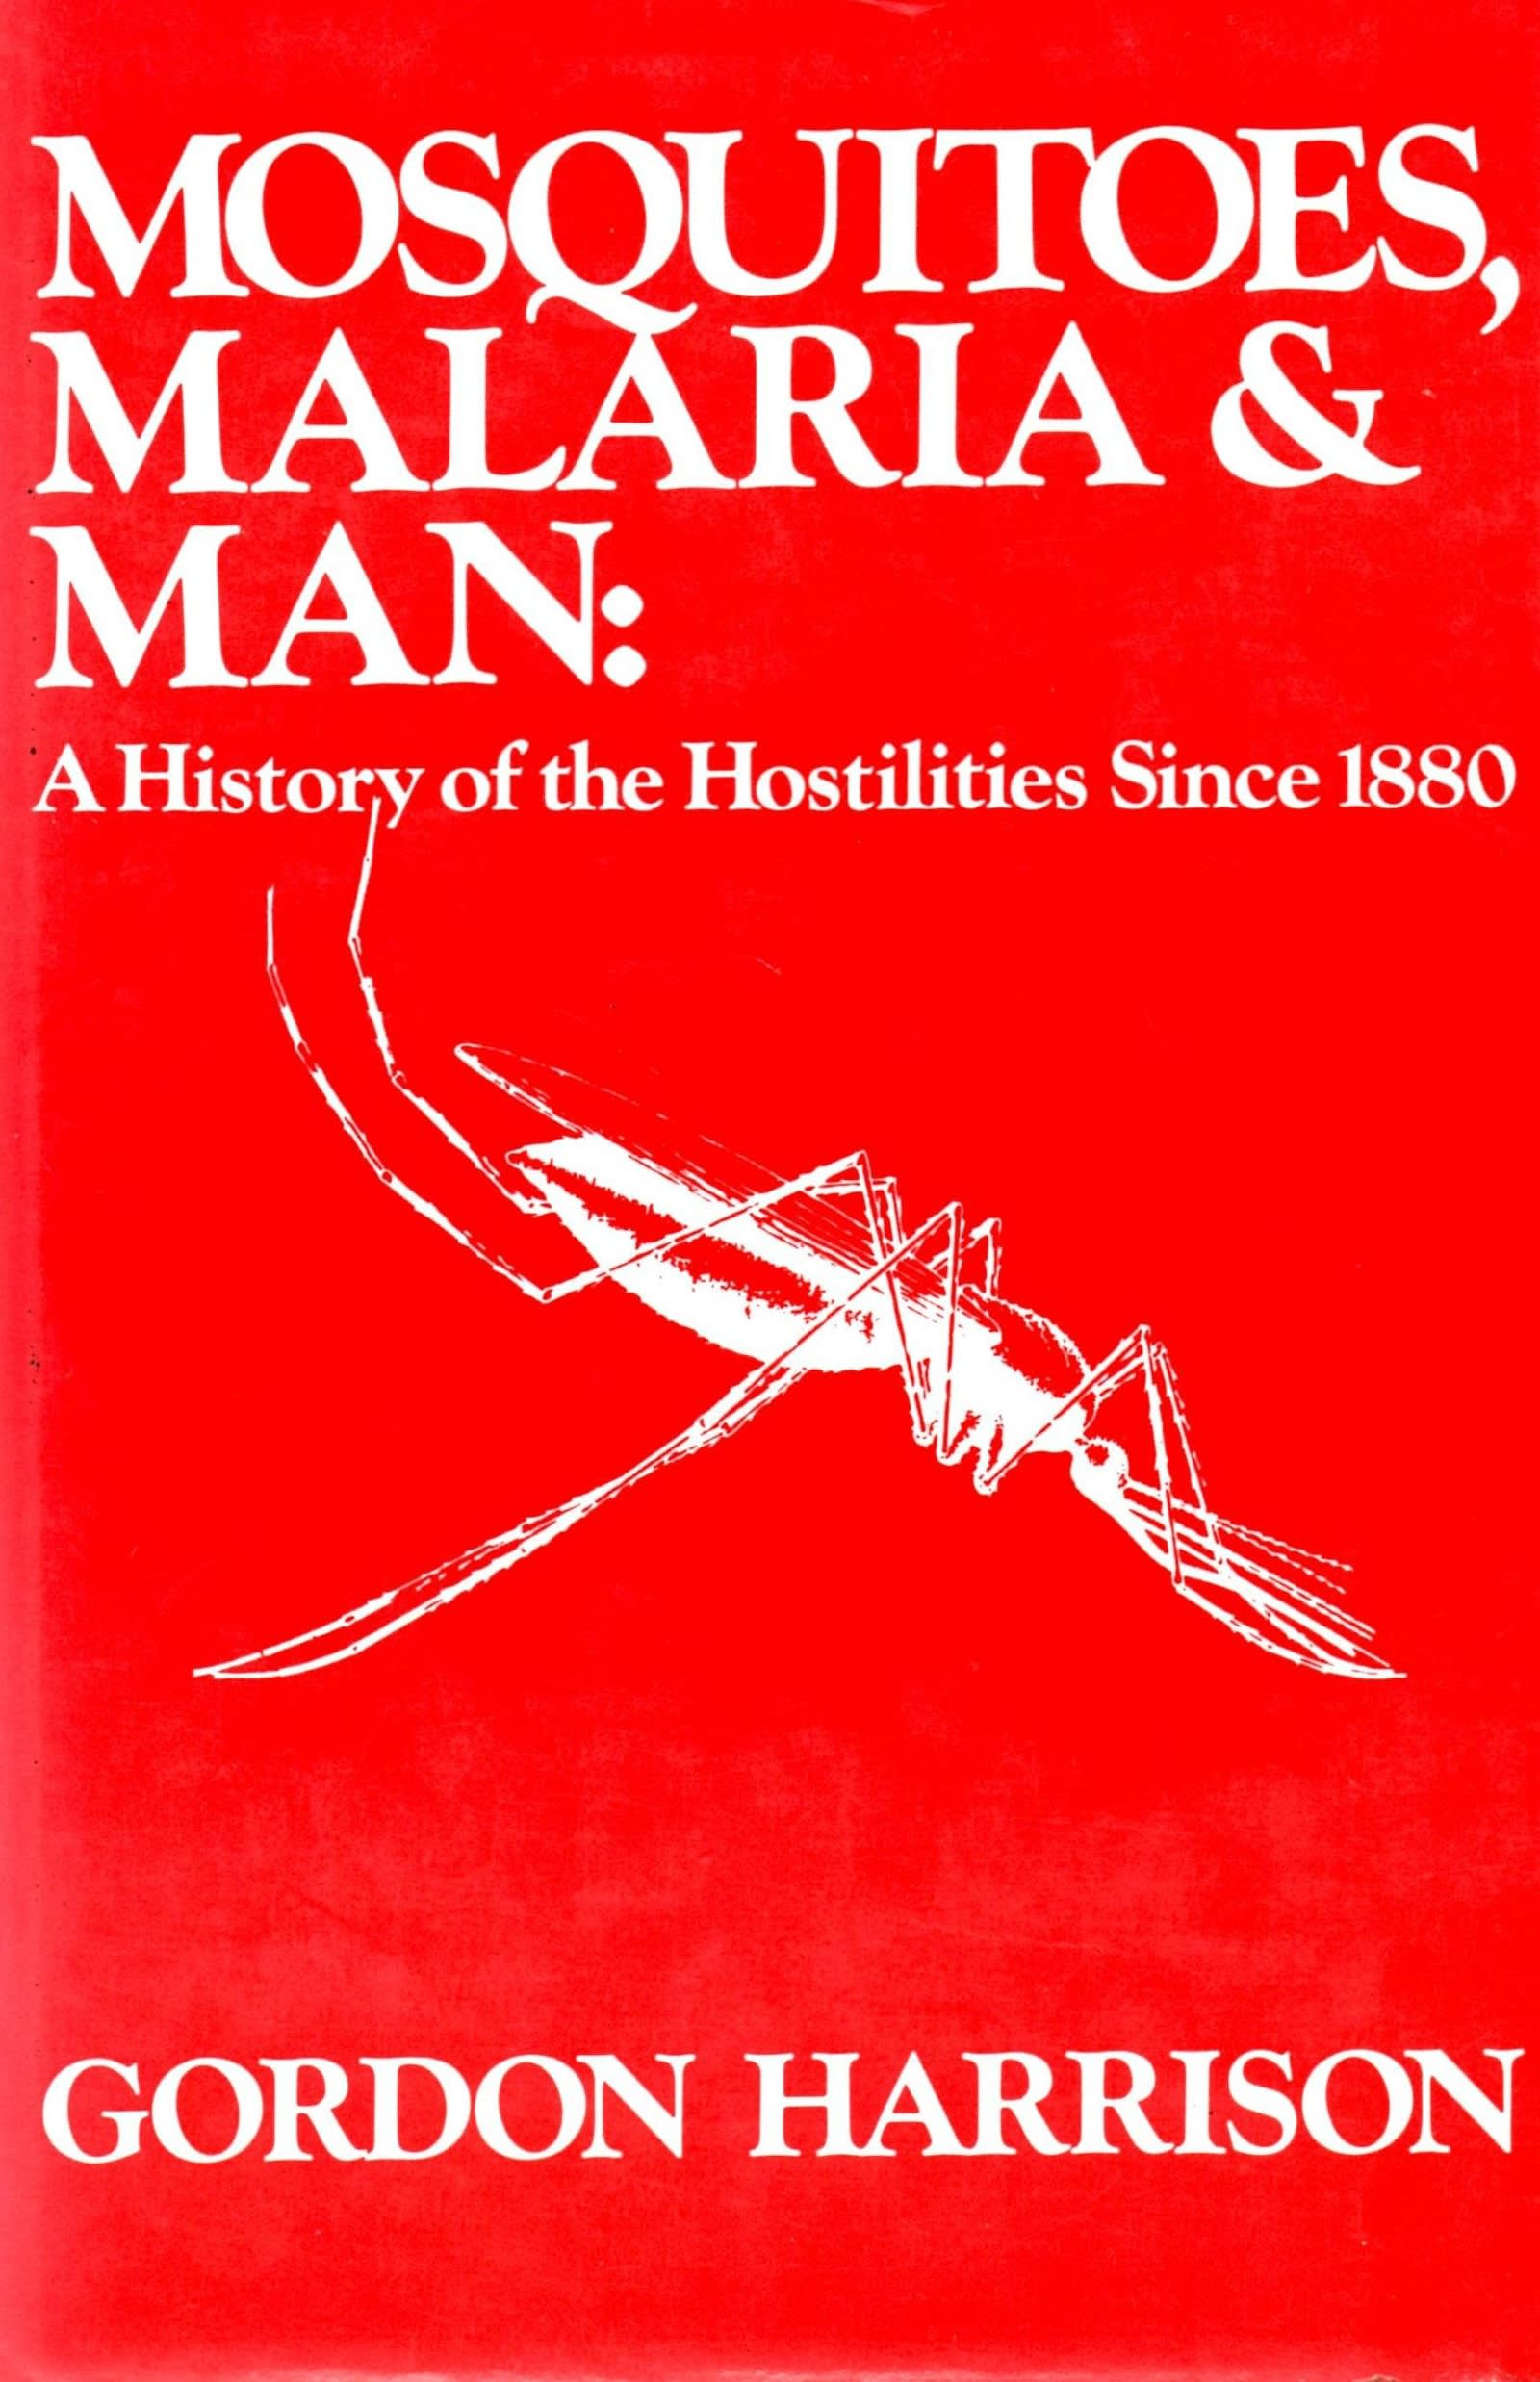 ONE TIME USE HANDOUT: Mosquitoes, Malaria & Man